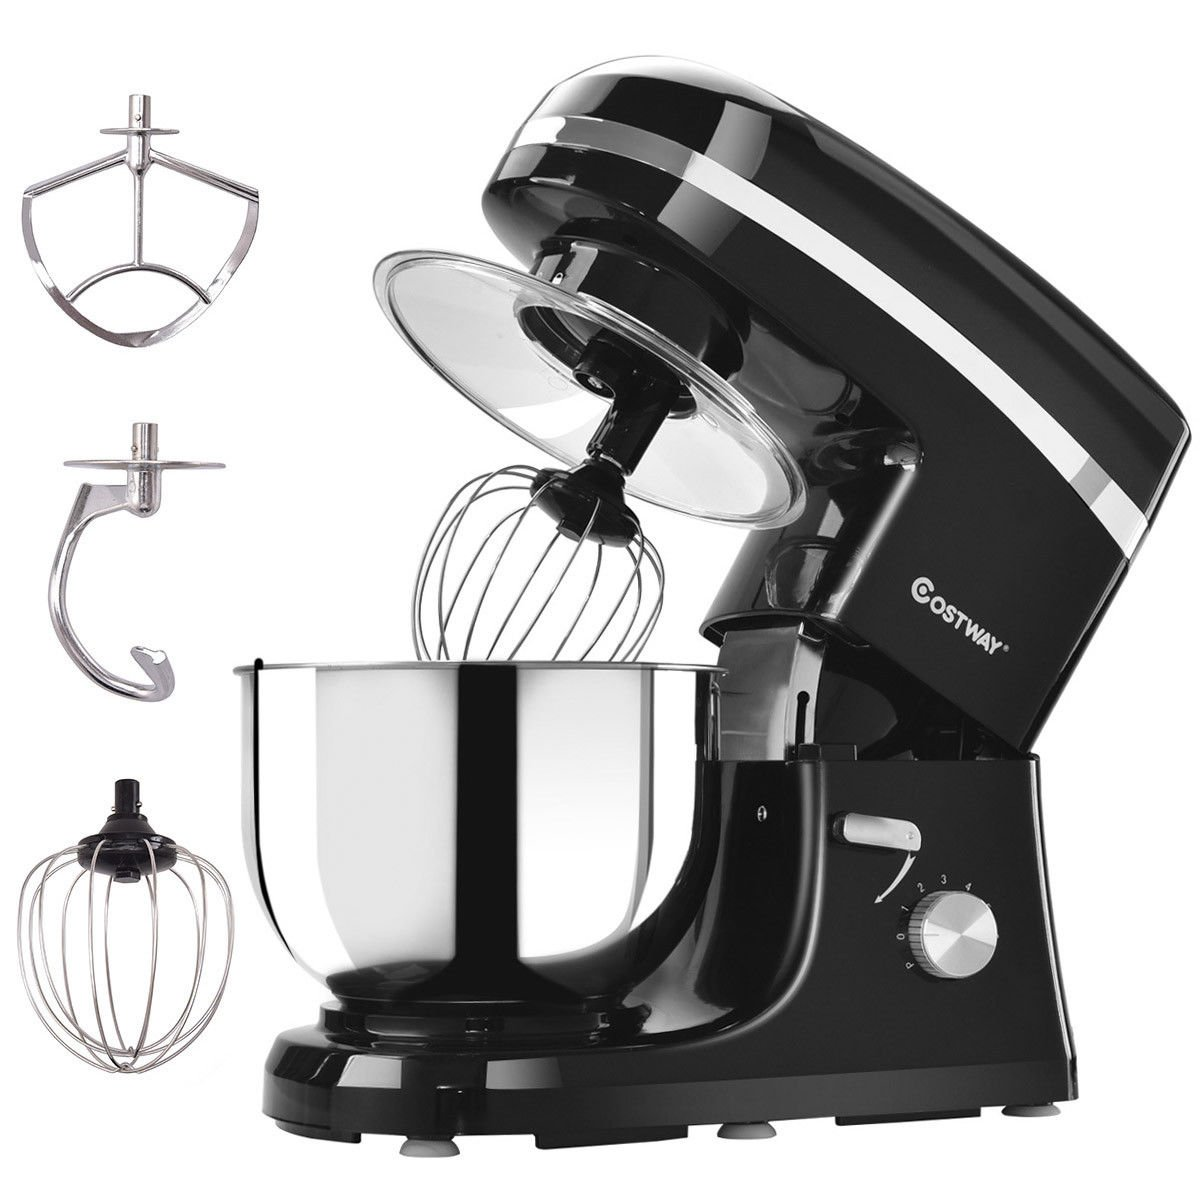 COSTWAY Tilt-head Stand Mixer 5.3Qt 6-Speed 120V/800W Electric Food Mixer with Mixer Blade, Dough Hook, Whisk, Splash Guard, Stainless Steel Bowl(Black) by COSTWAY